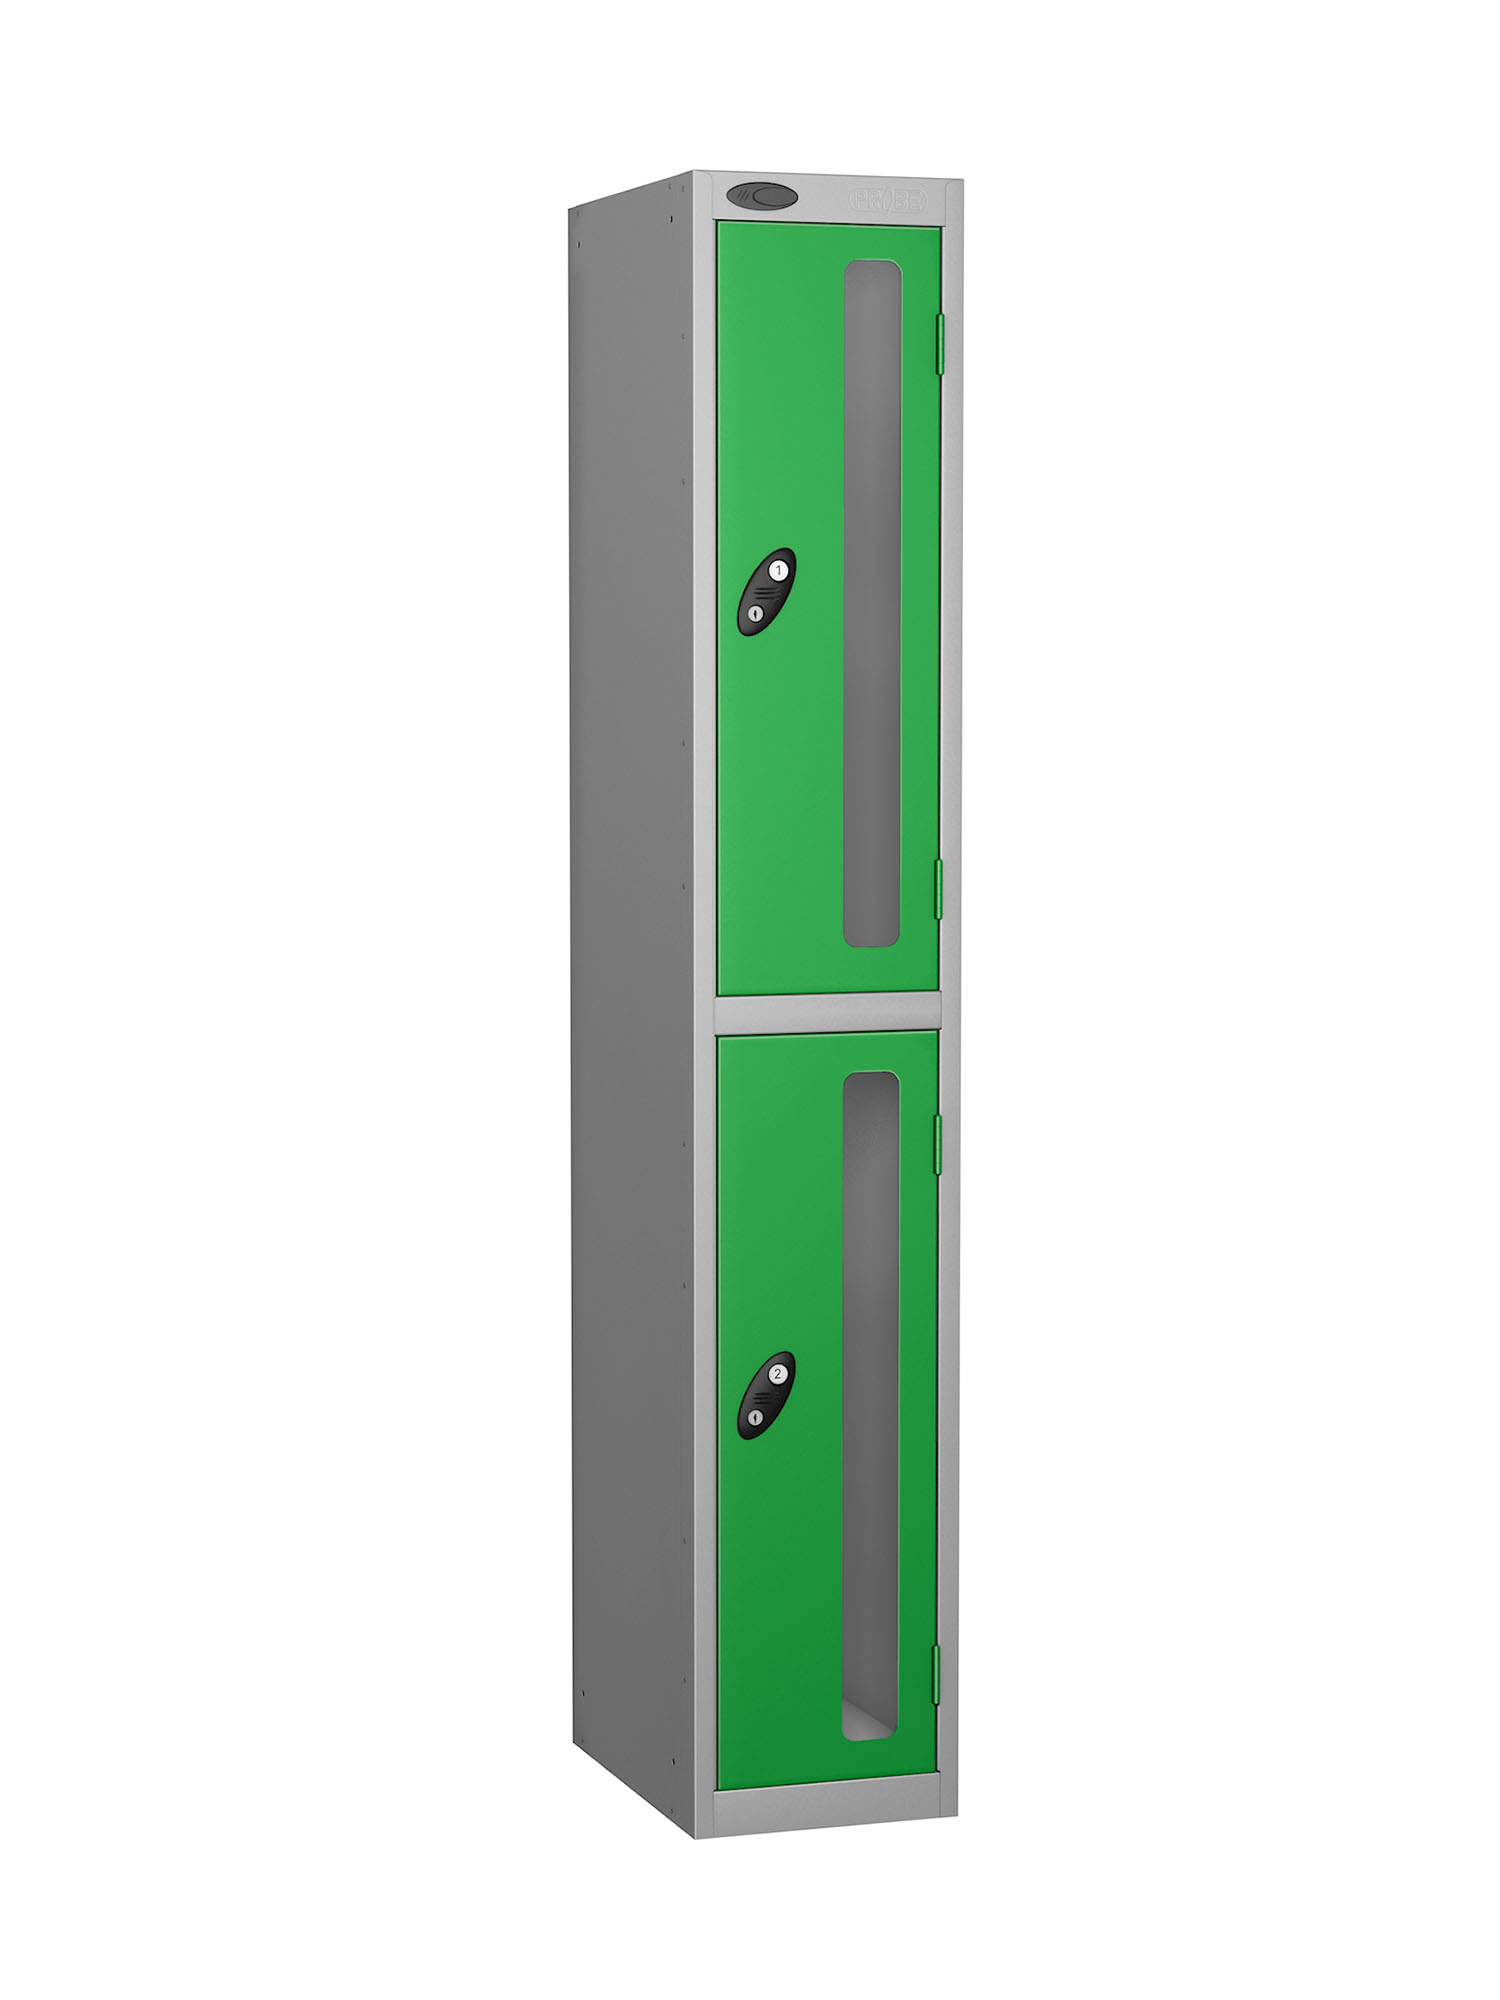 Probe 2 doors vision panel anti-stock theft locker green